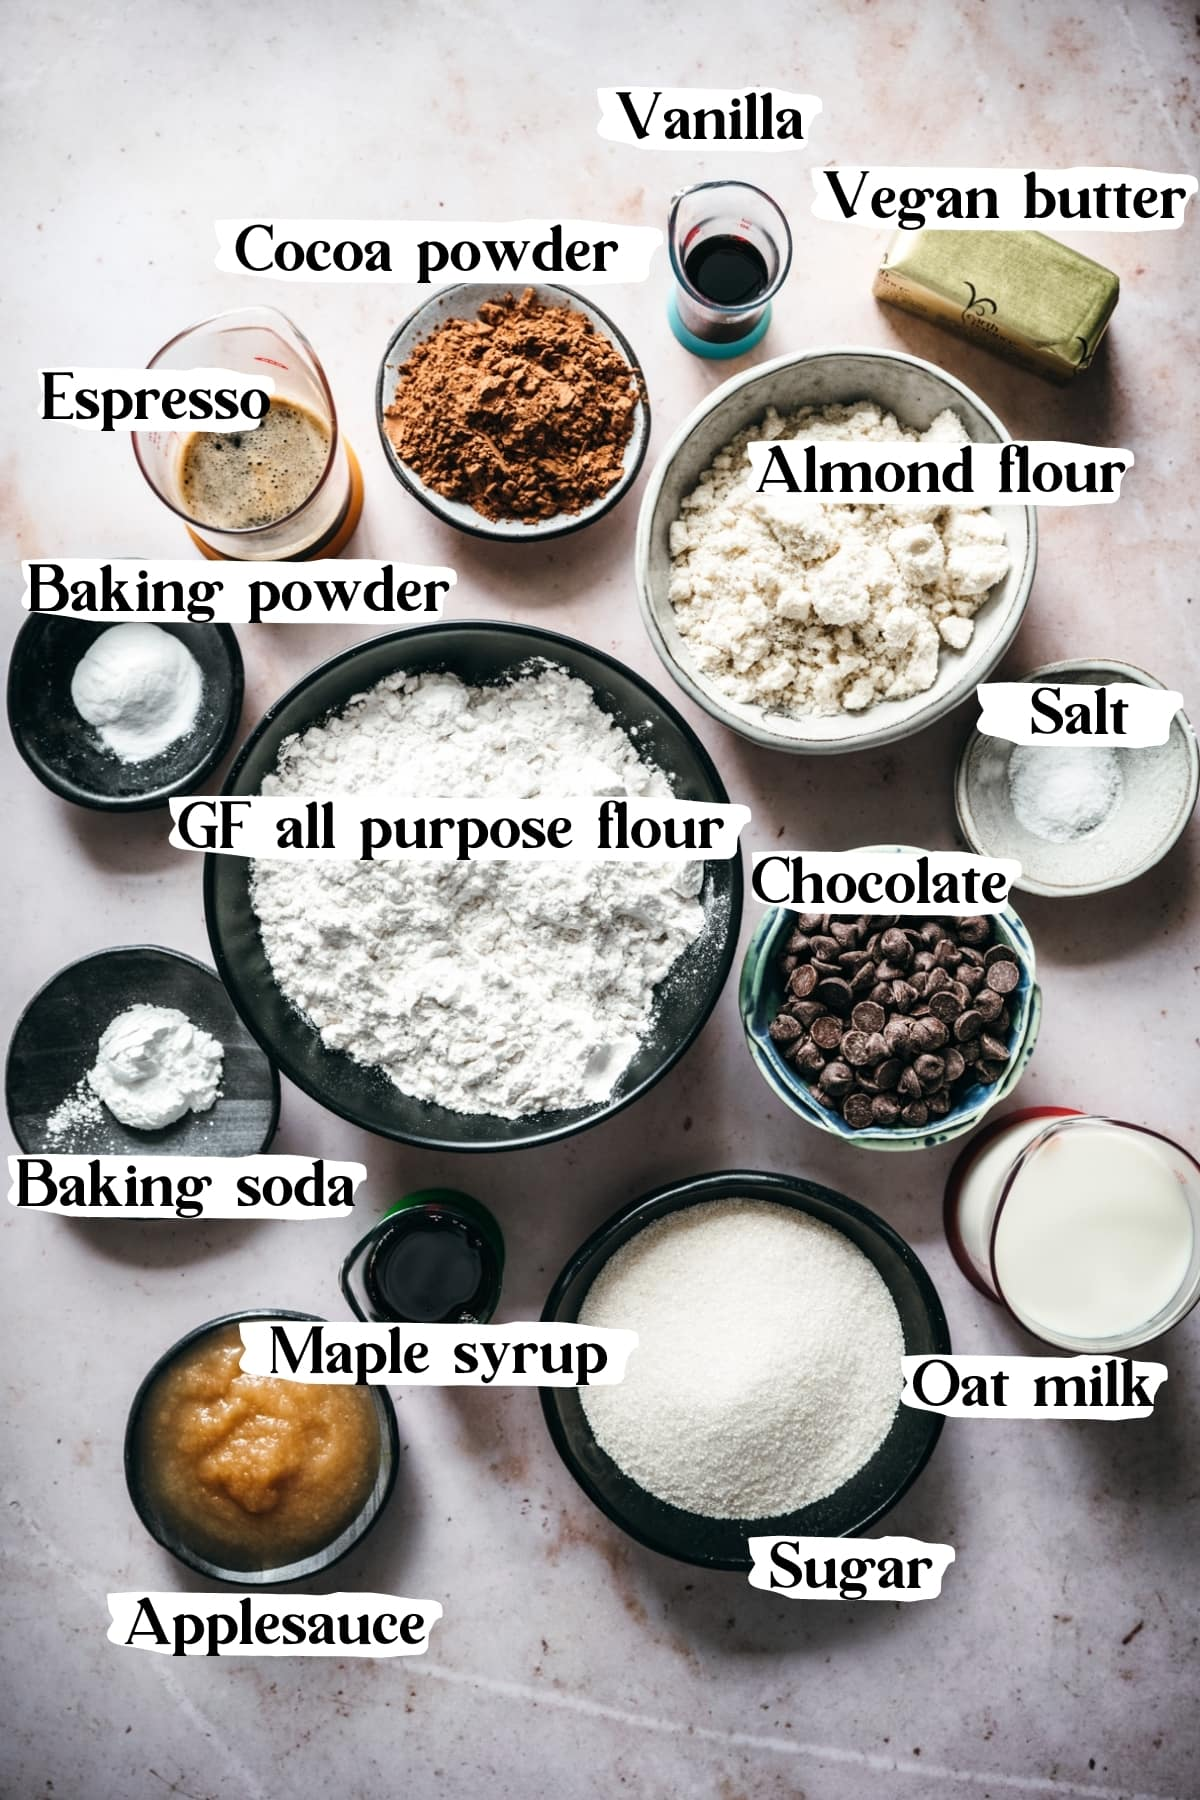 overhead view of ingredients to make vegan chocolate cake, including flour, vegan butter, applesauce, chocolate, cocoa powder.